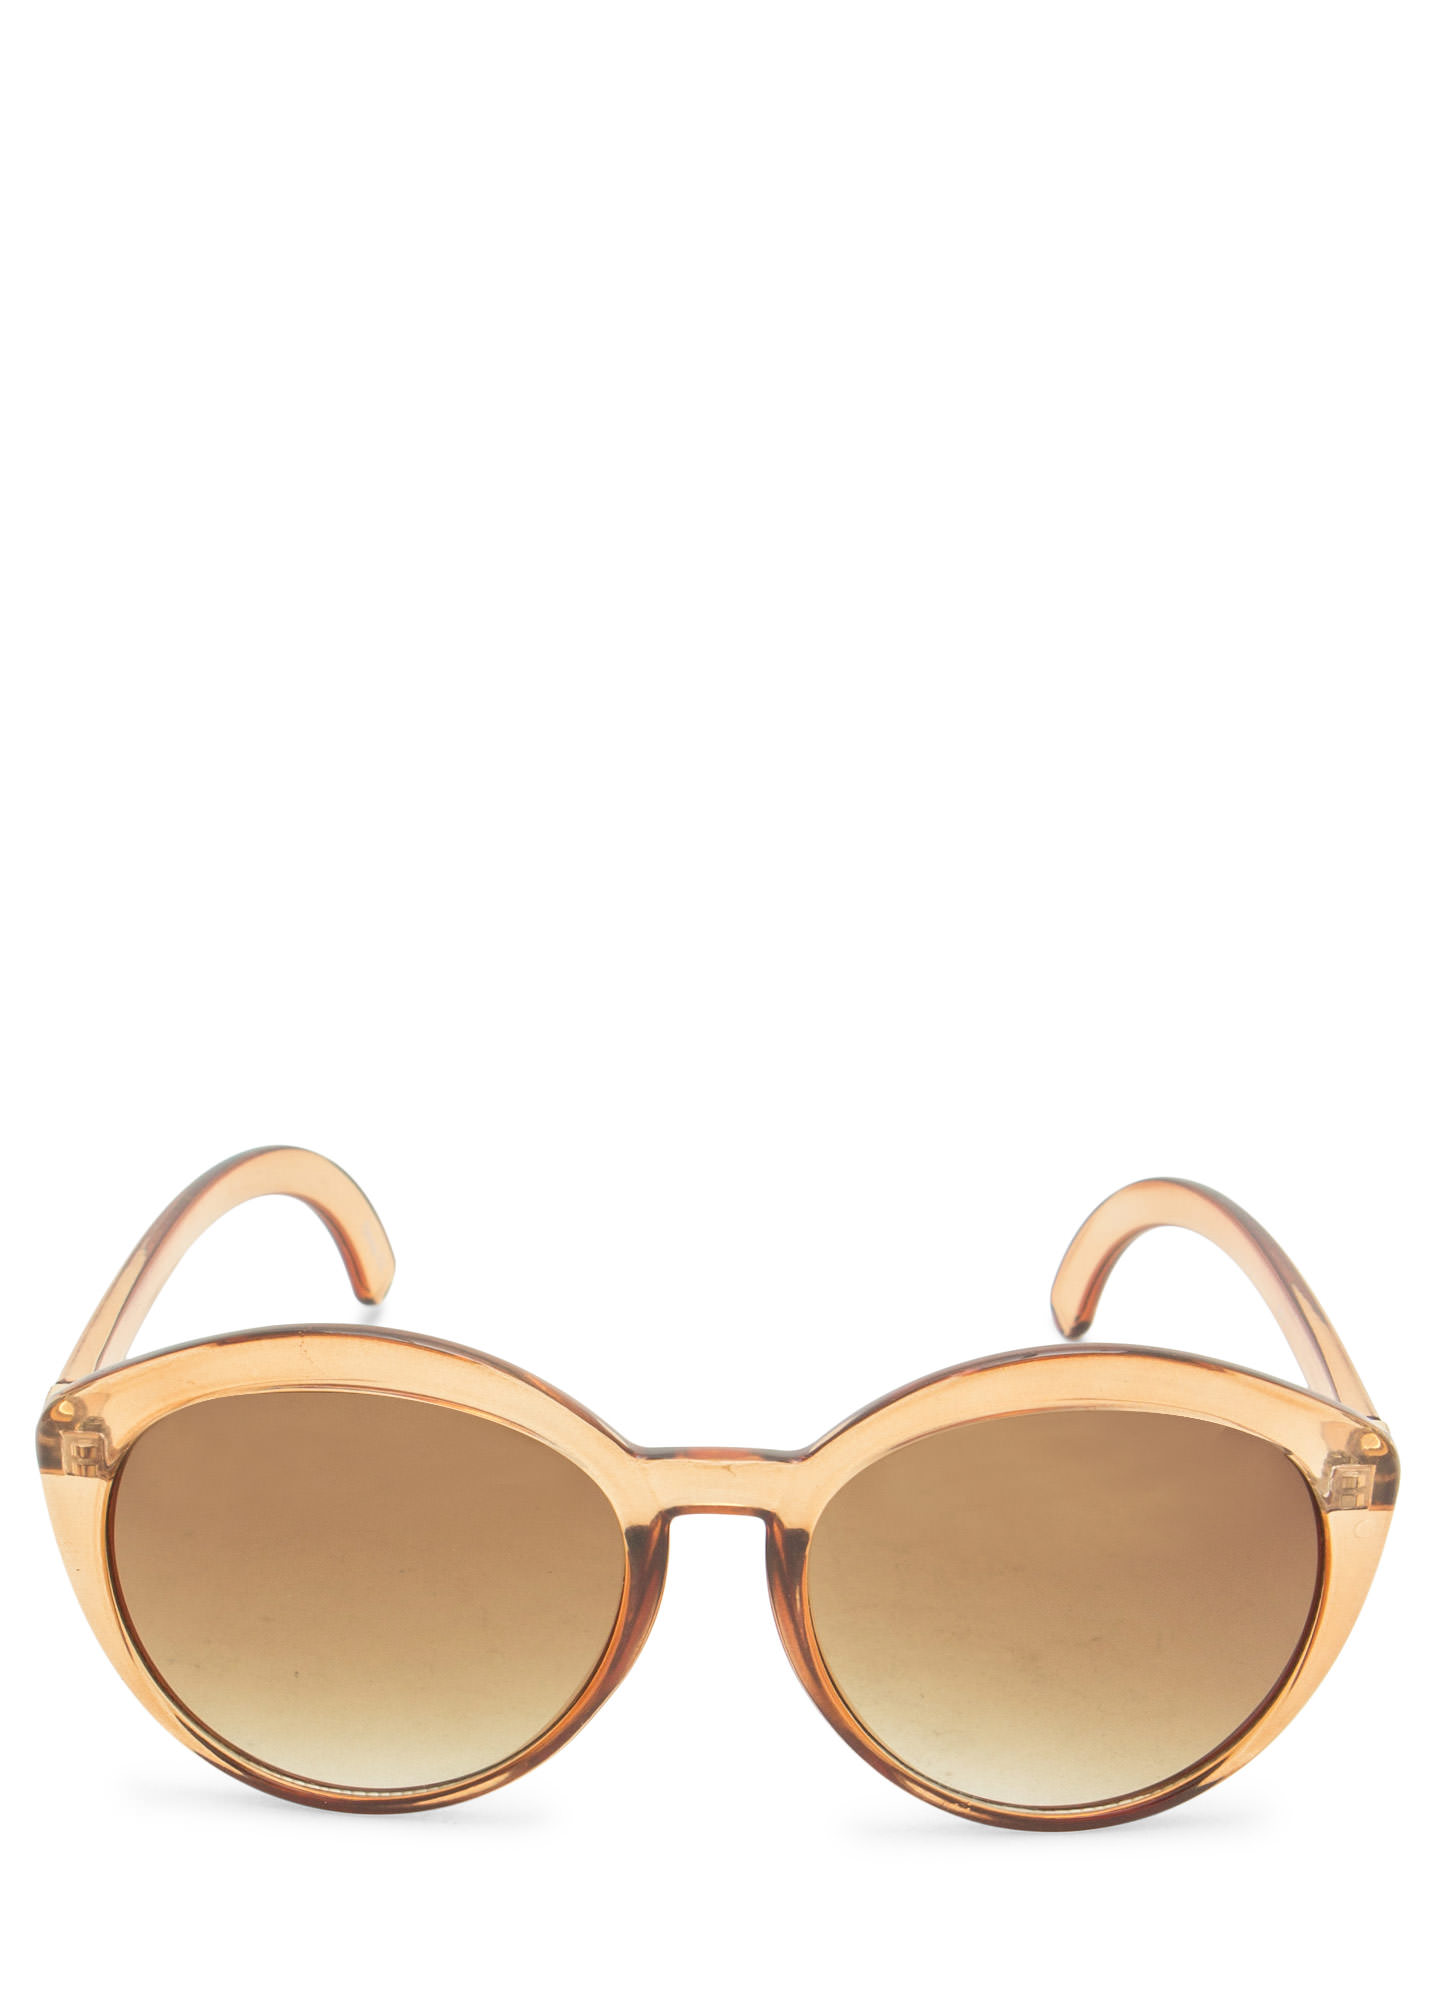 Top Heavy Flare Frame Sunglasses DRKBROWN